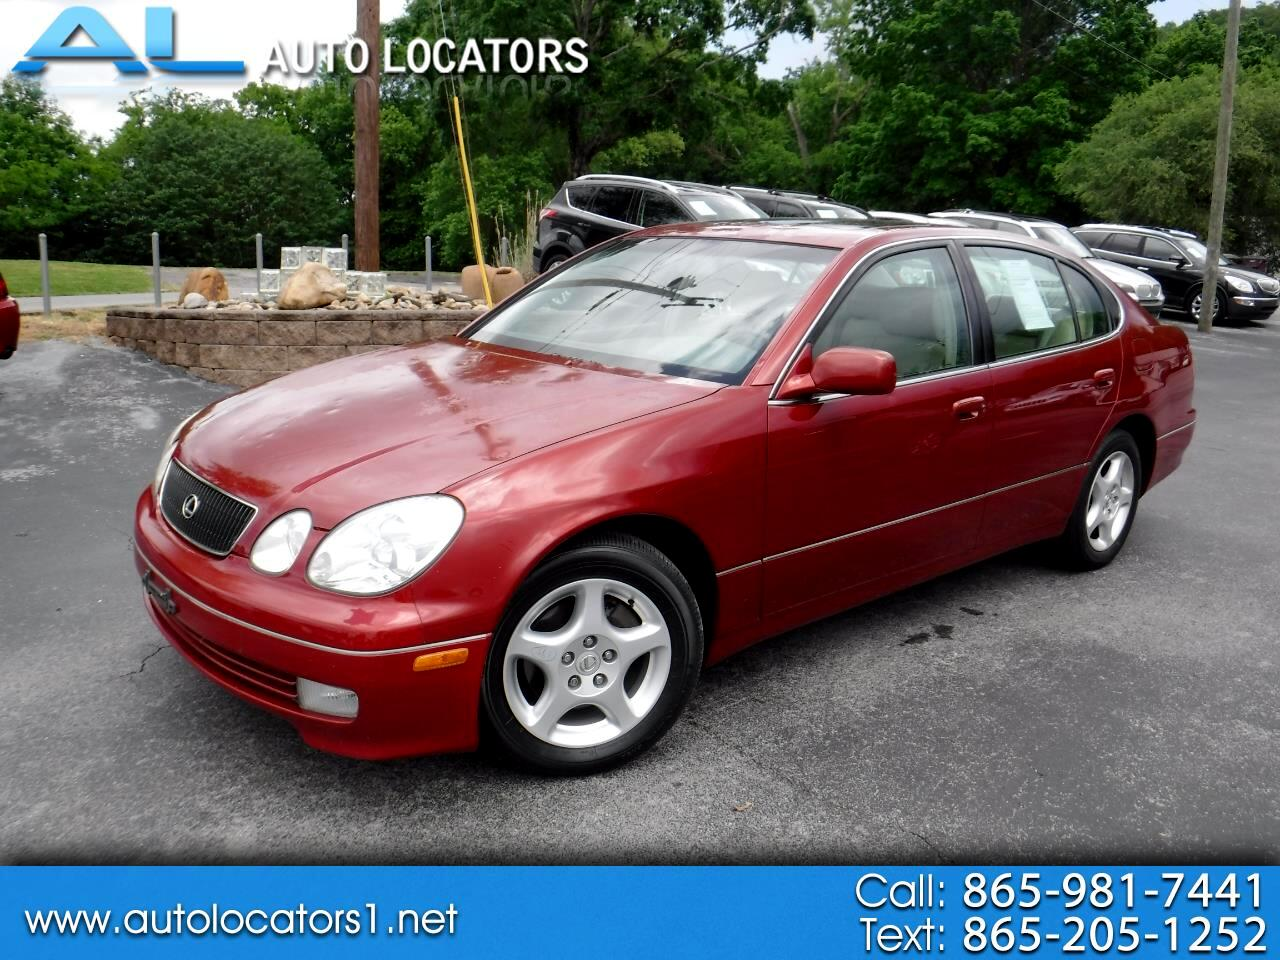 1999 Lexus GS 300 Luxury Perform Sdn 4dr Sdn